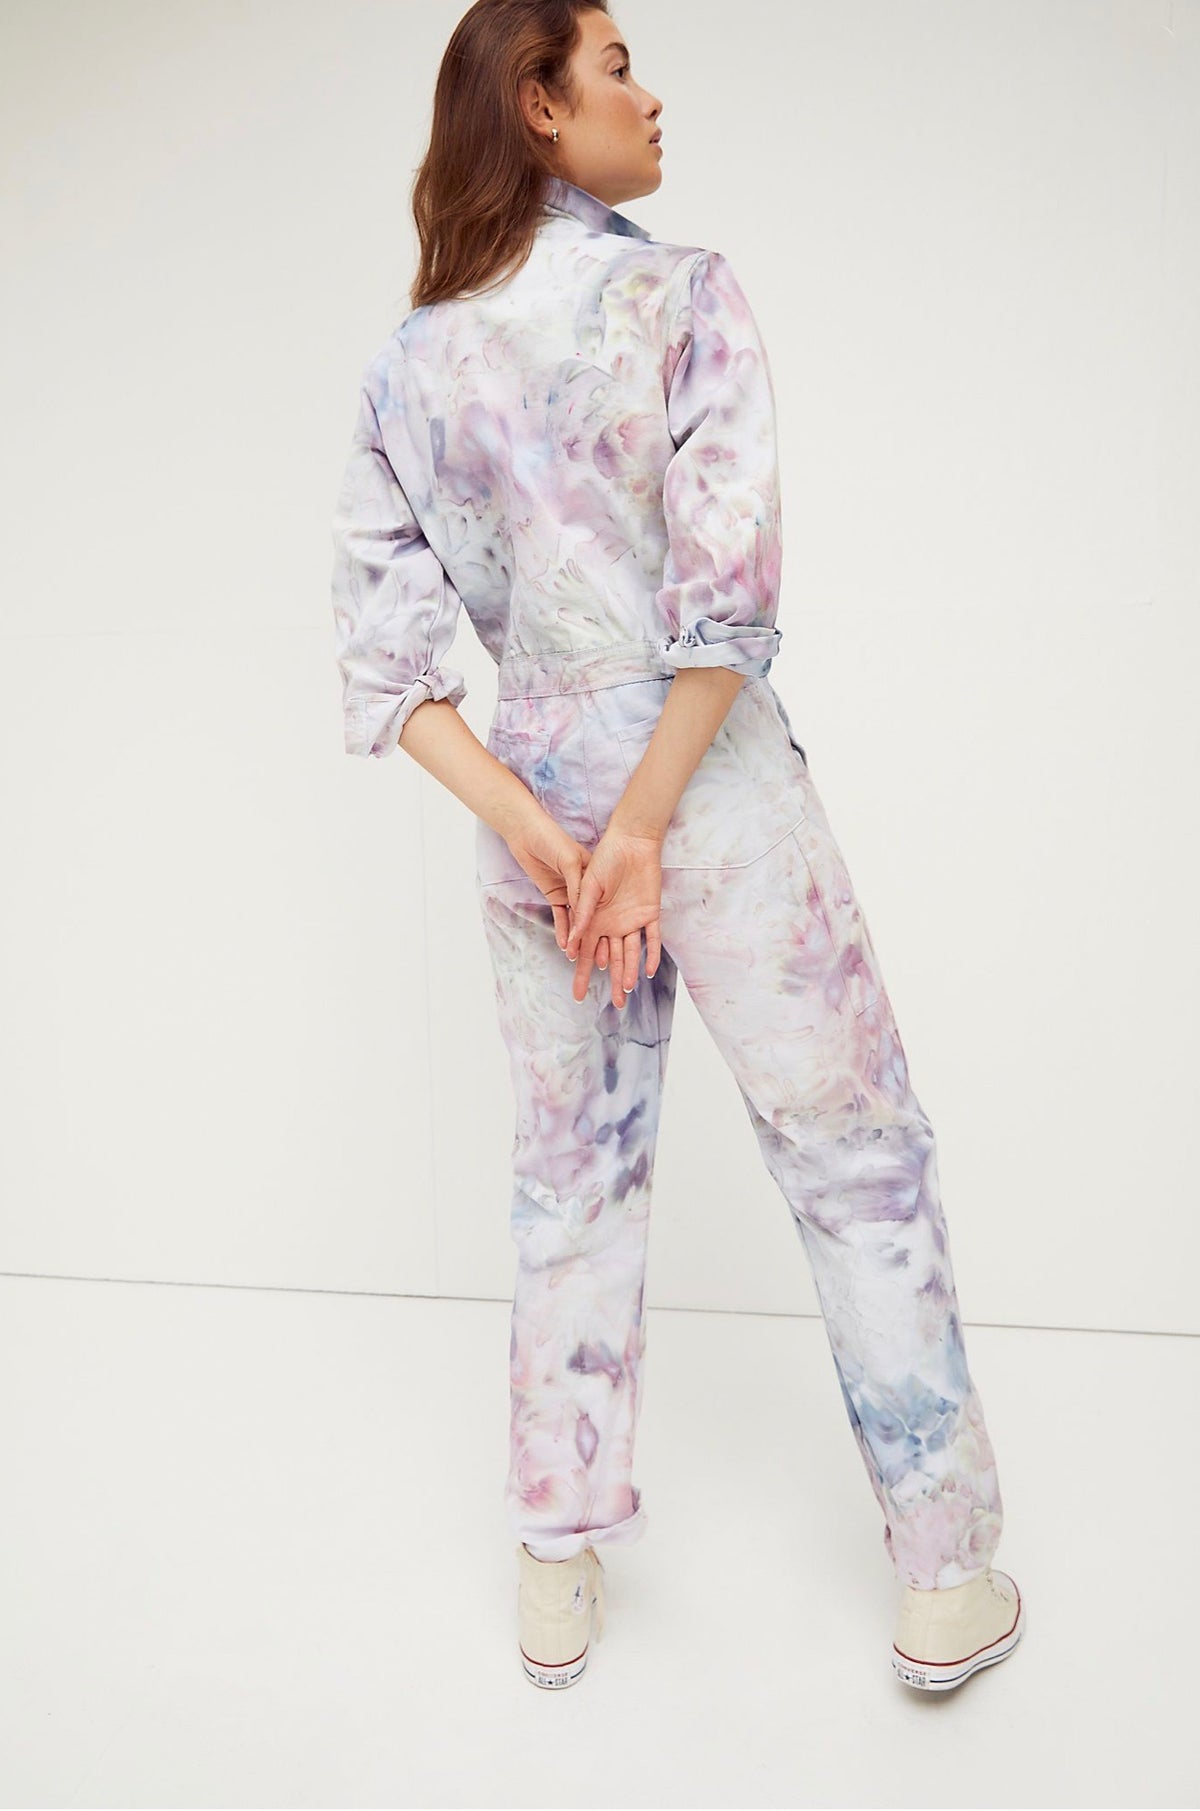 Coveralls in Pastel